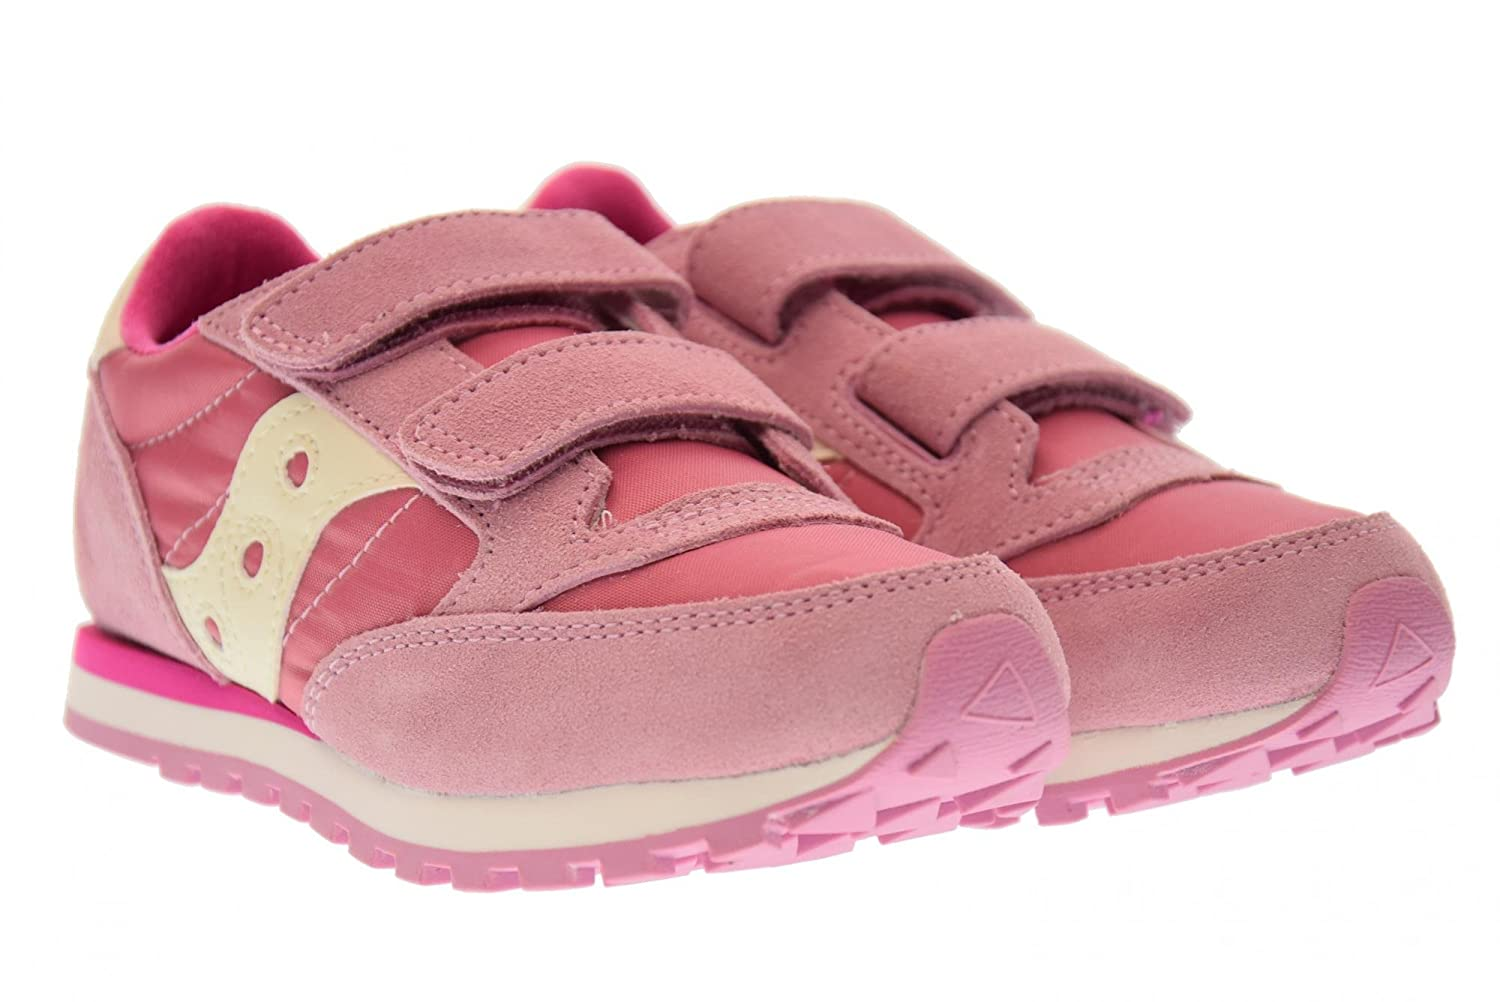 SAUCONY SC56452 JAZZ DBLE HL fuchsia pink baby girls ripping shoes:  Amazon.co.uk: Shoes & Bags